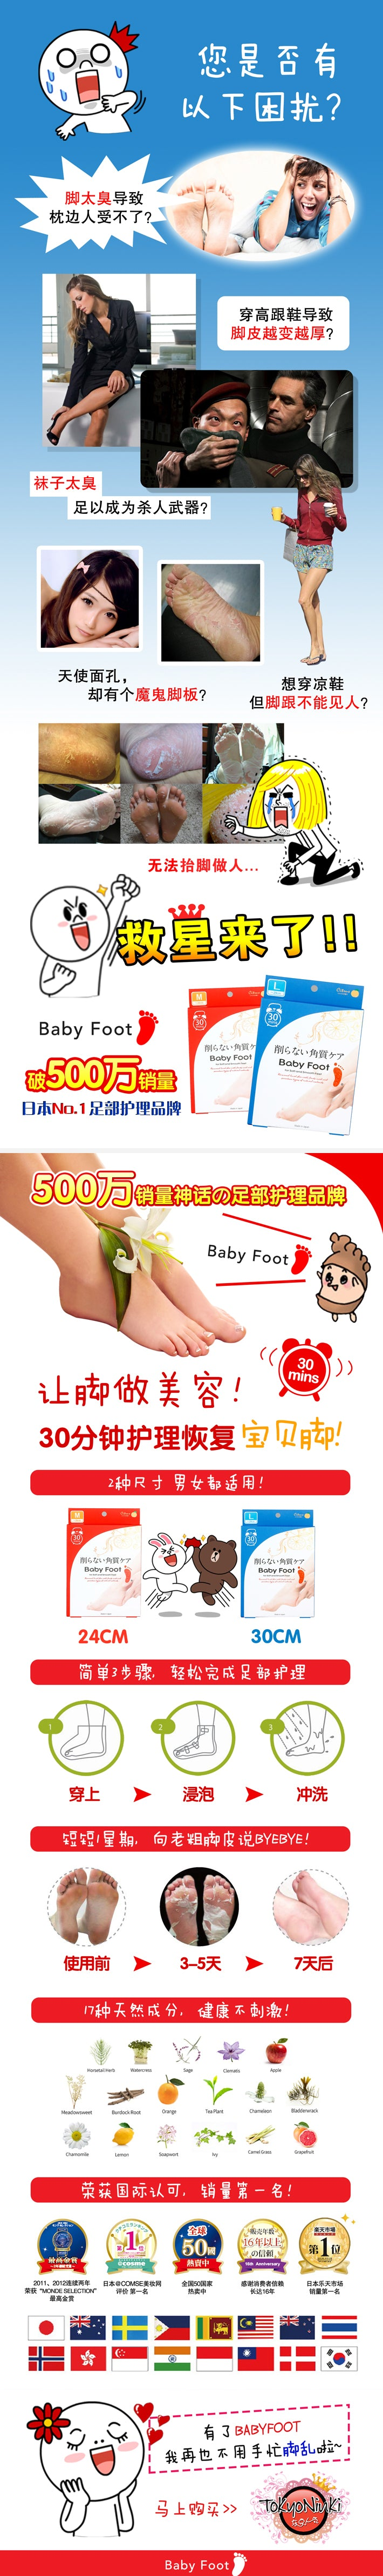 Babyfoot Chinese Info Landing Page